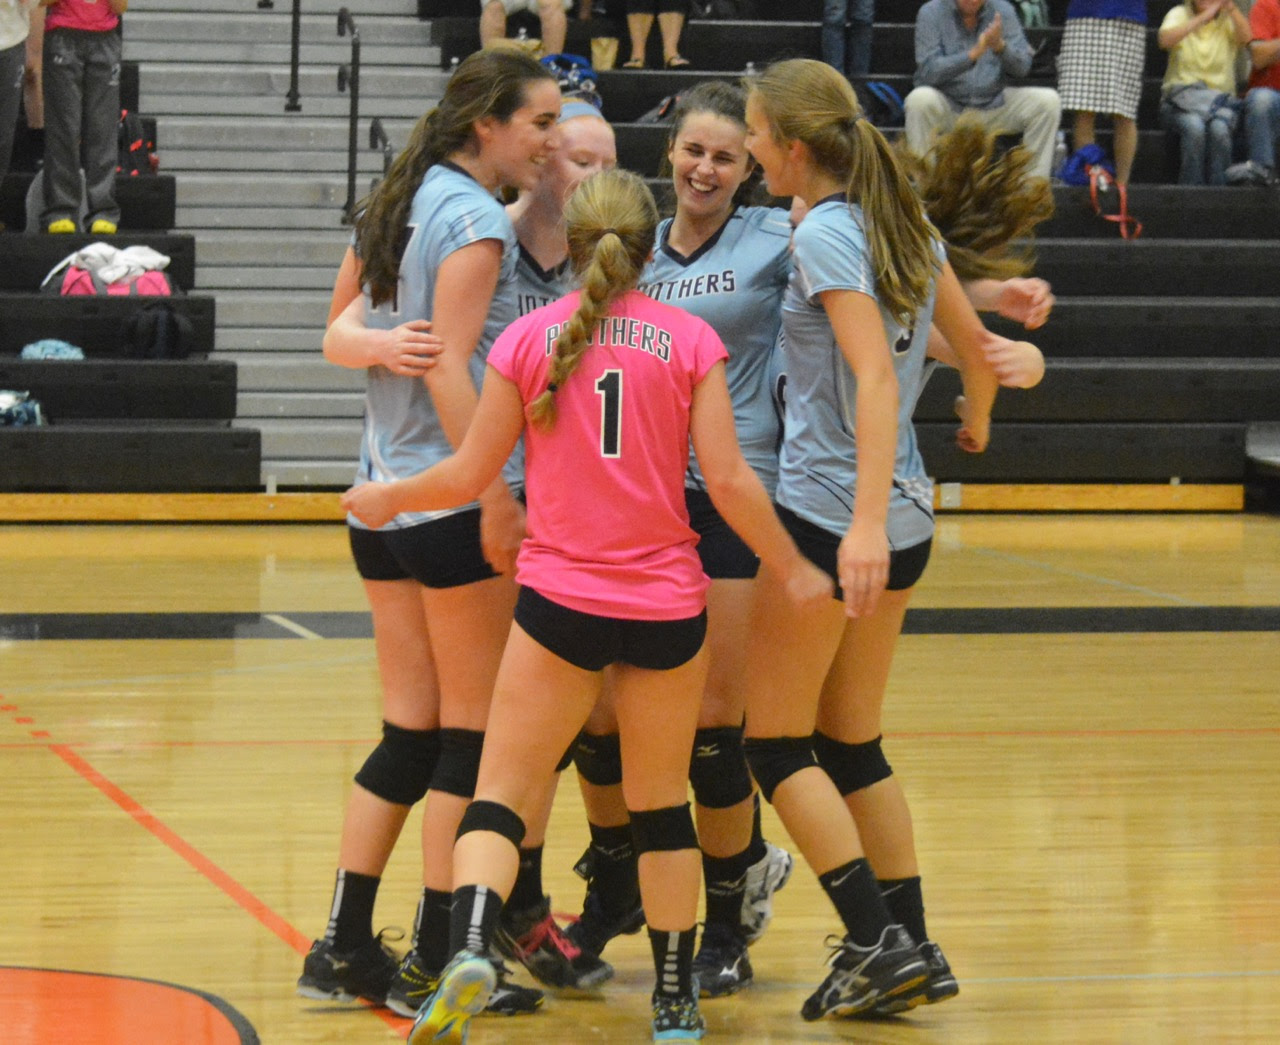 Franklin players celebrate the final point of the fifth set in a 3-2 victory over previously unbeaten Taunton on Monday. (Josh Perry/HockomockSports.com)